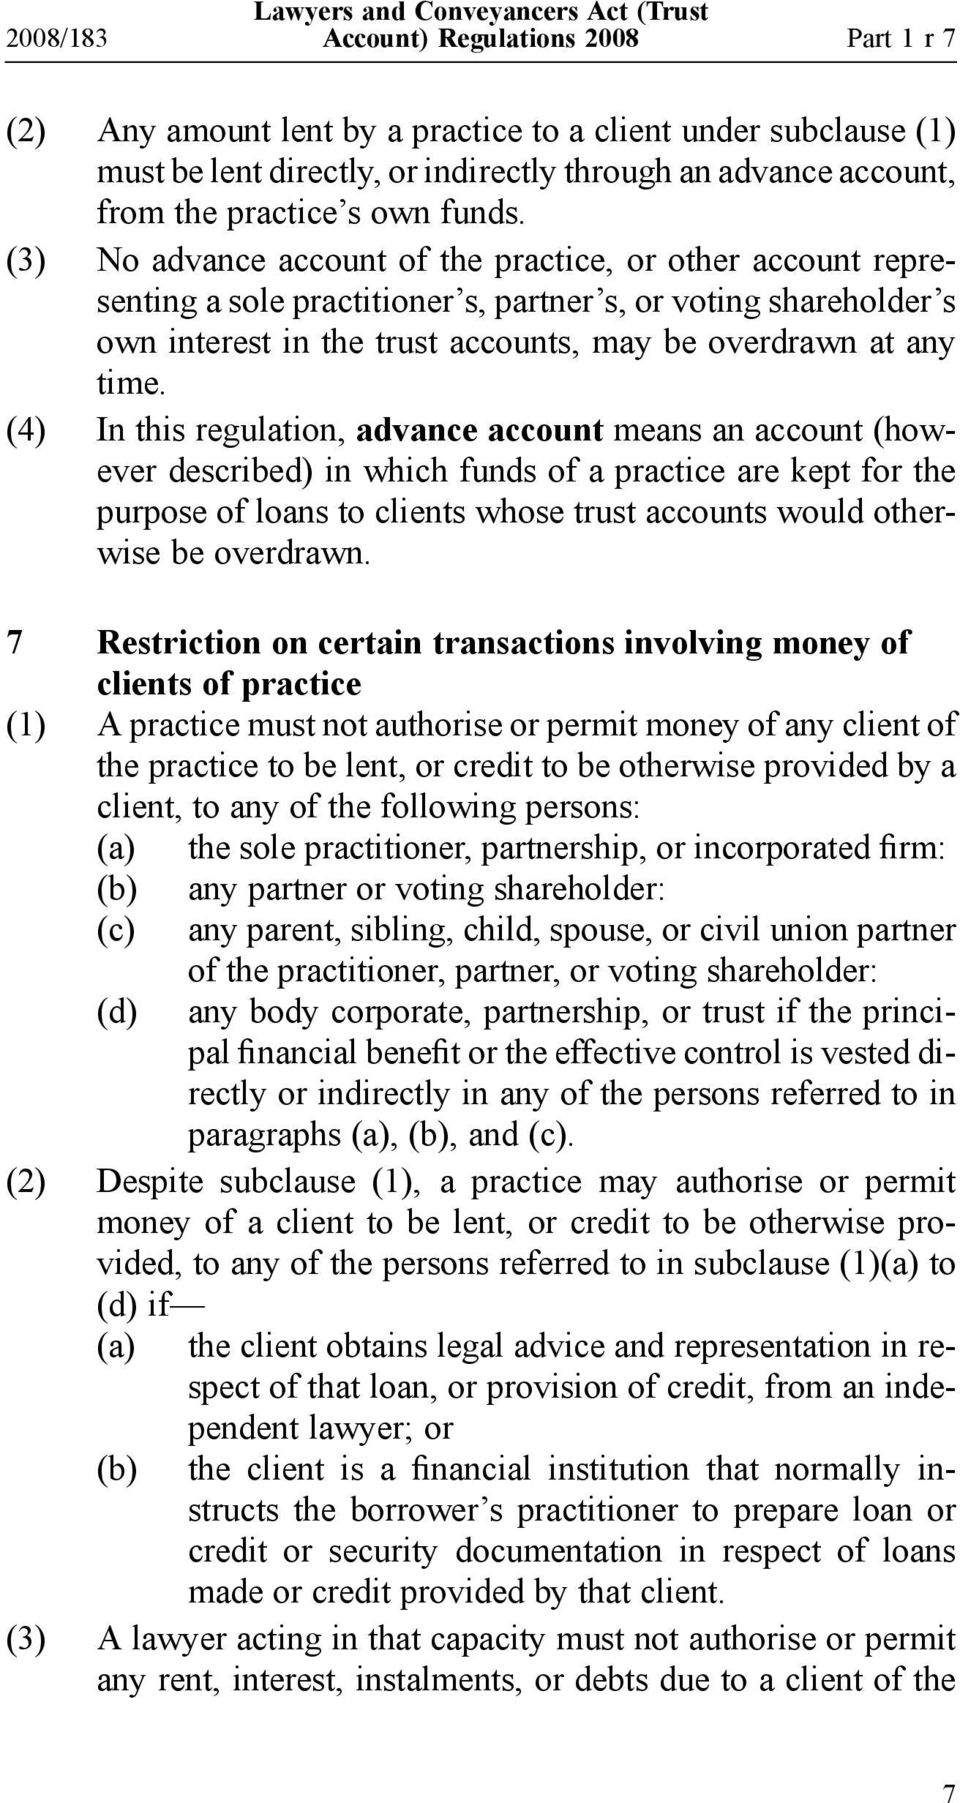 (4) In this regulation, advance account means an account (however described) in which funds of a practice are kept for the purpose of loans to clients whose trust accounts would otherwise be